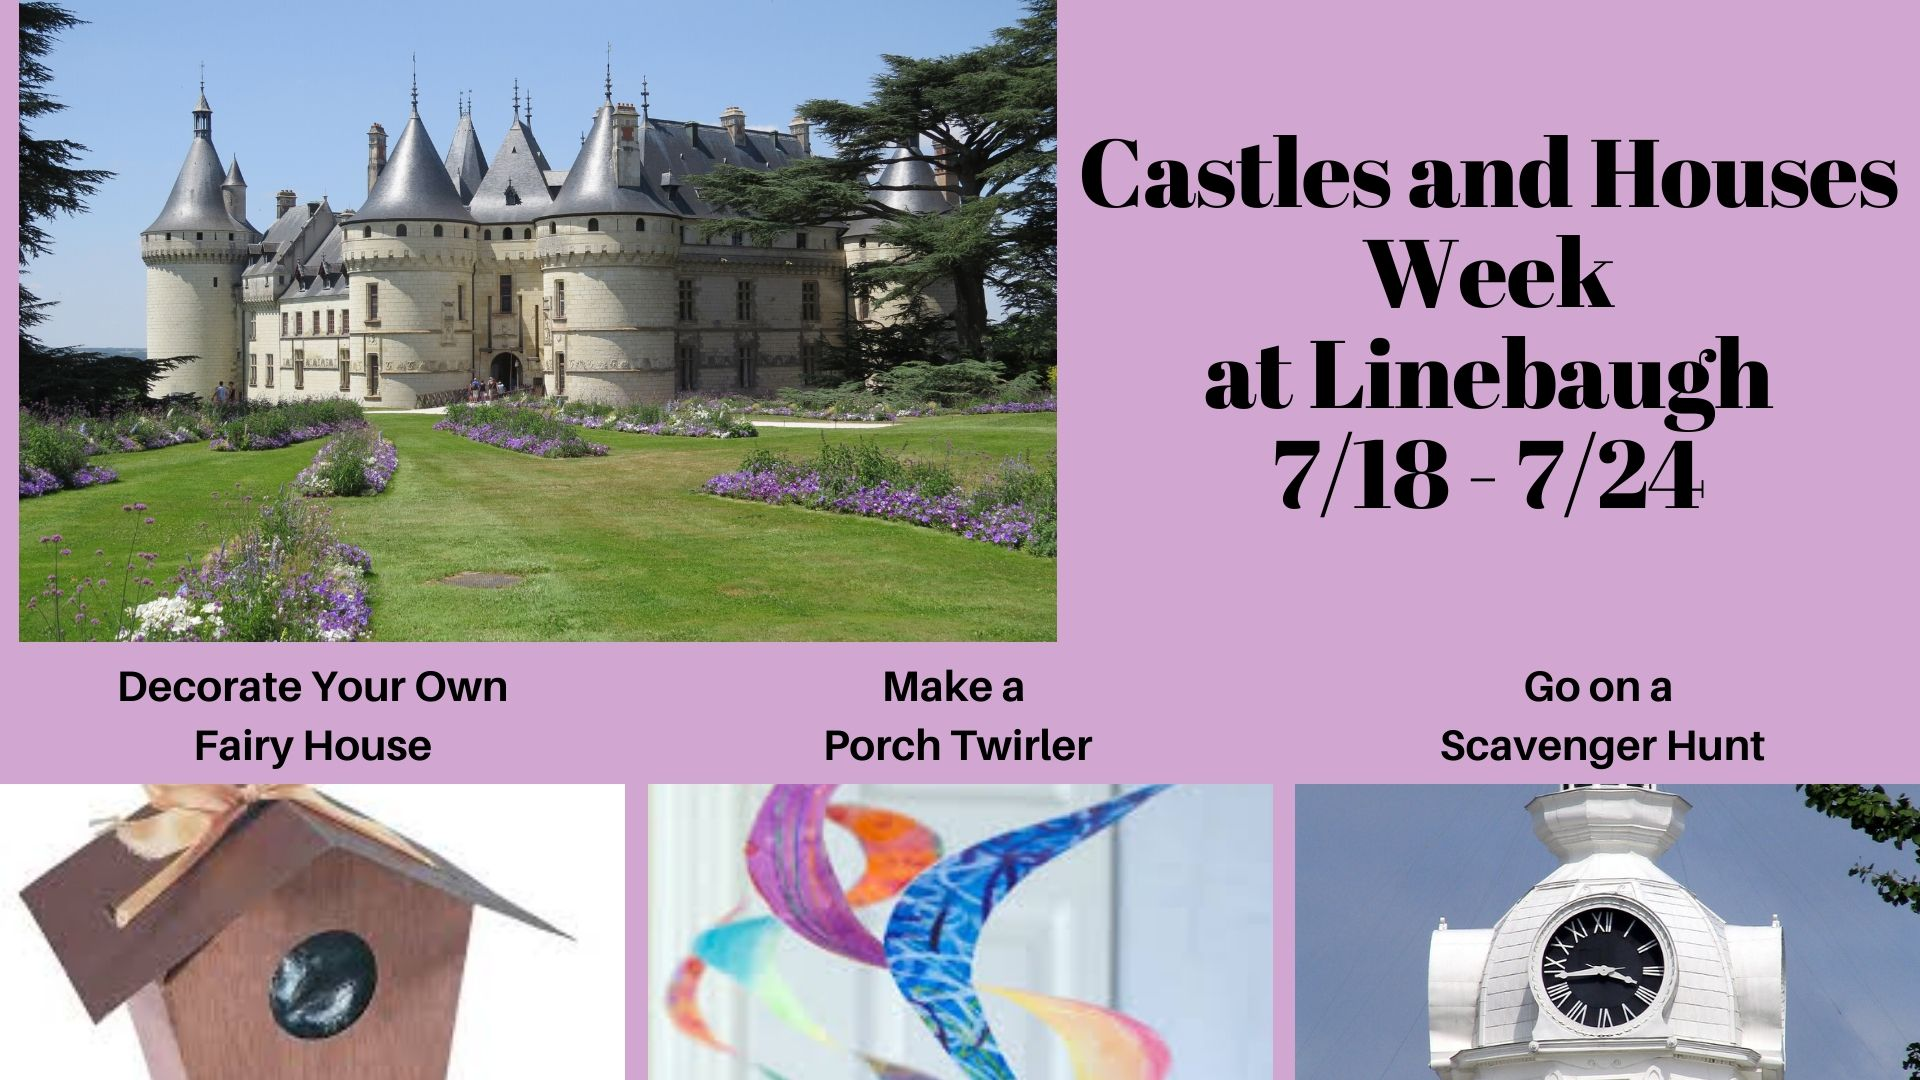 Castles and Houses Week at Linebaugh